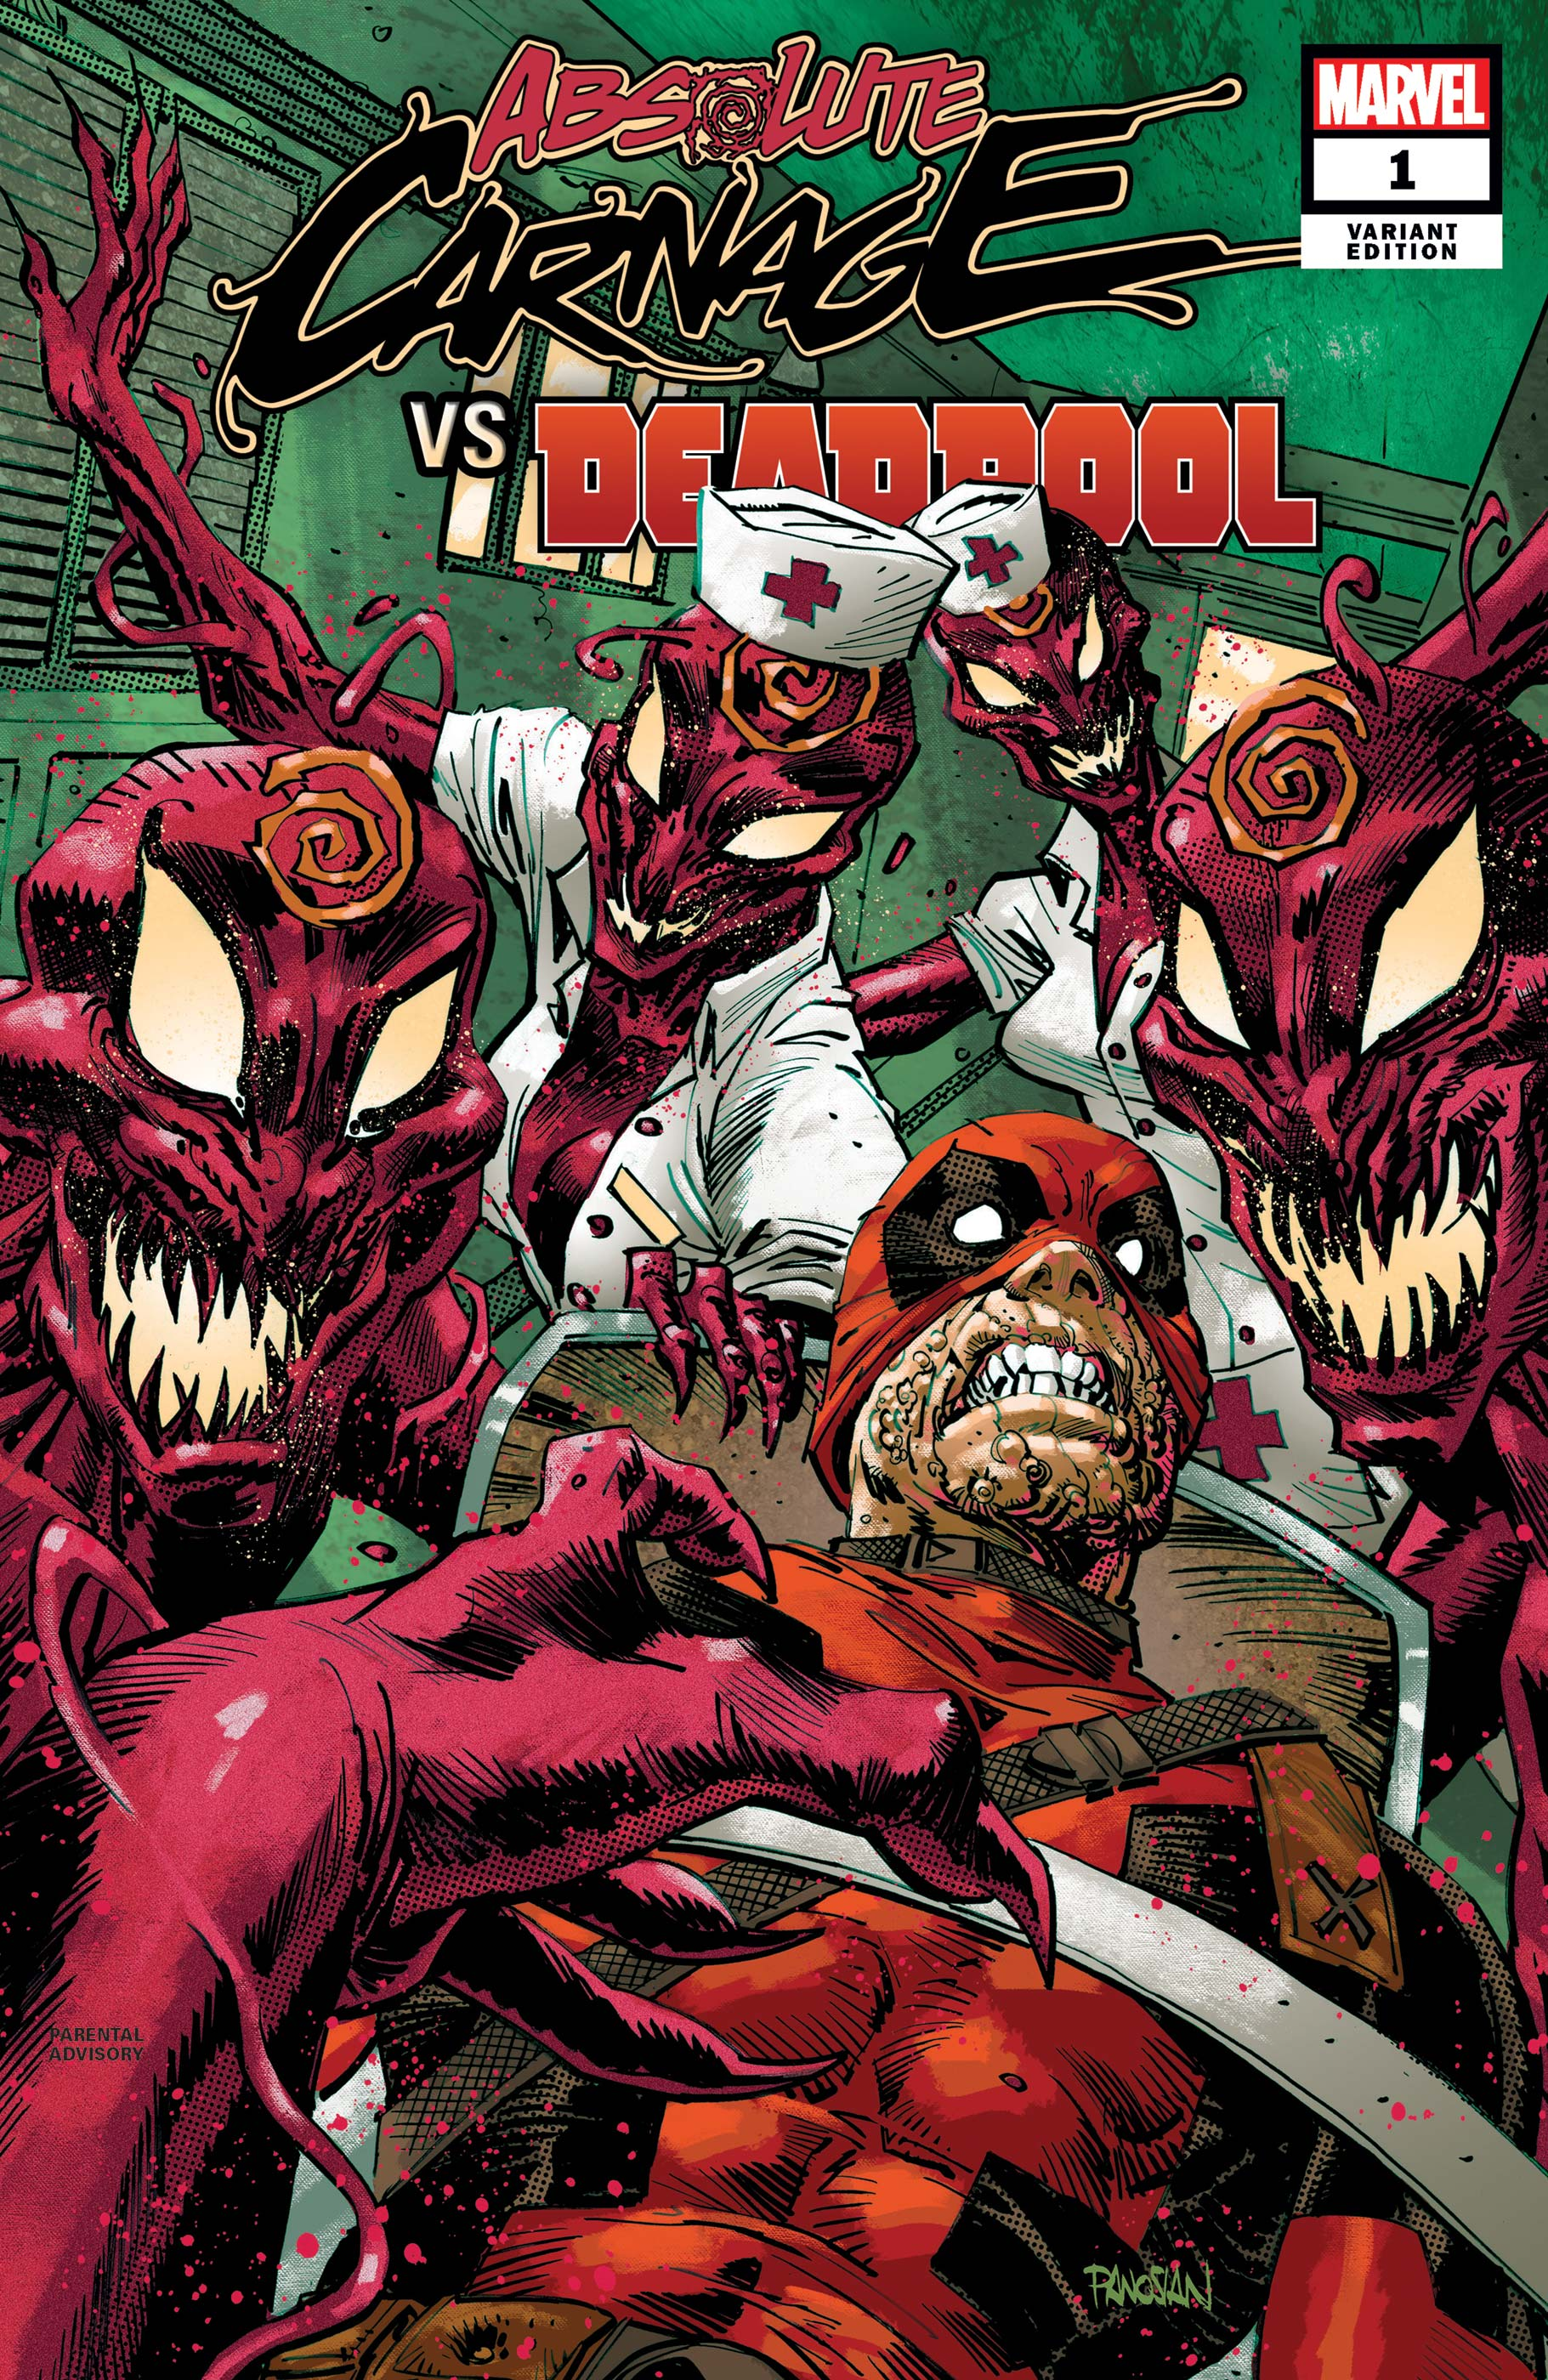 Absolute Carnage Vs. Deadpool (2019) #1 (Variant)